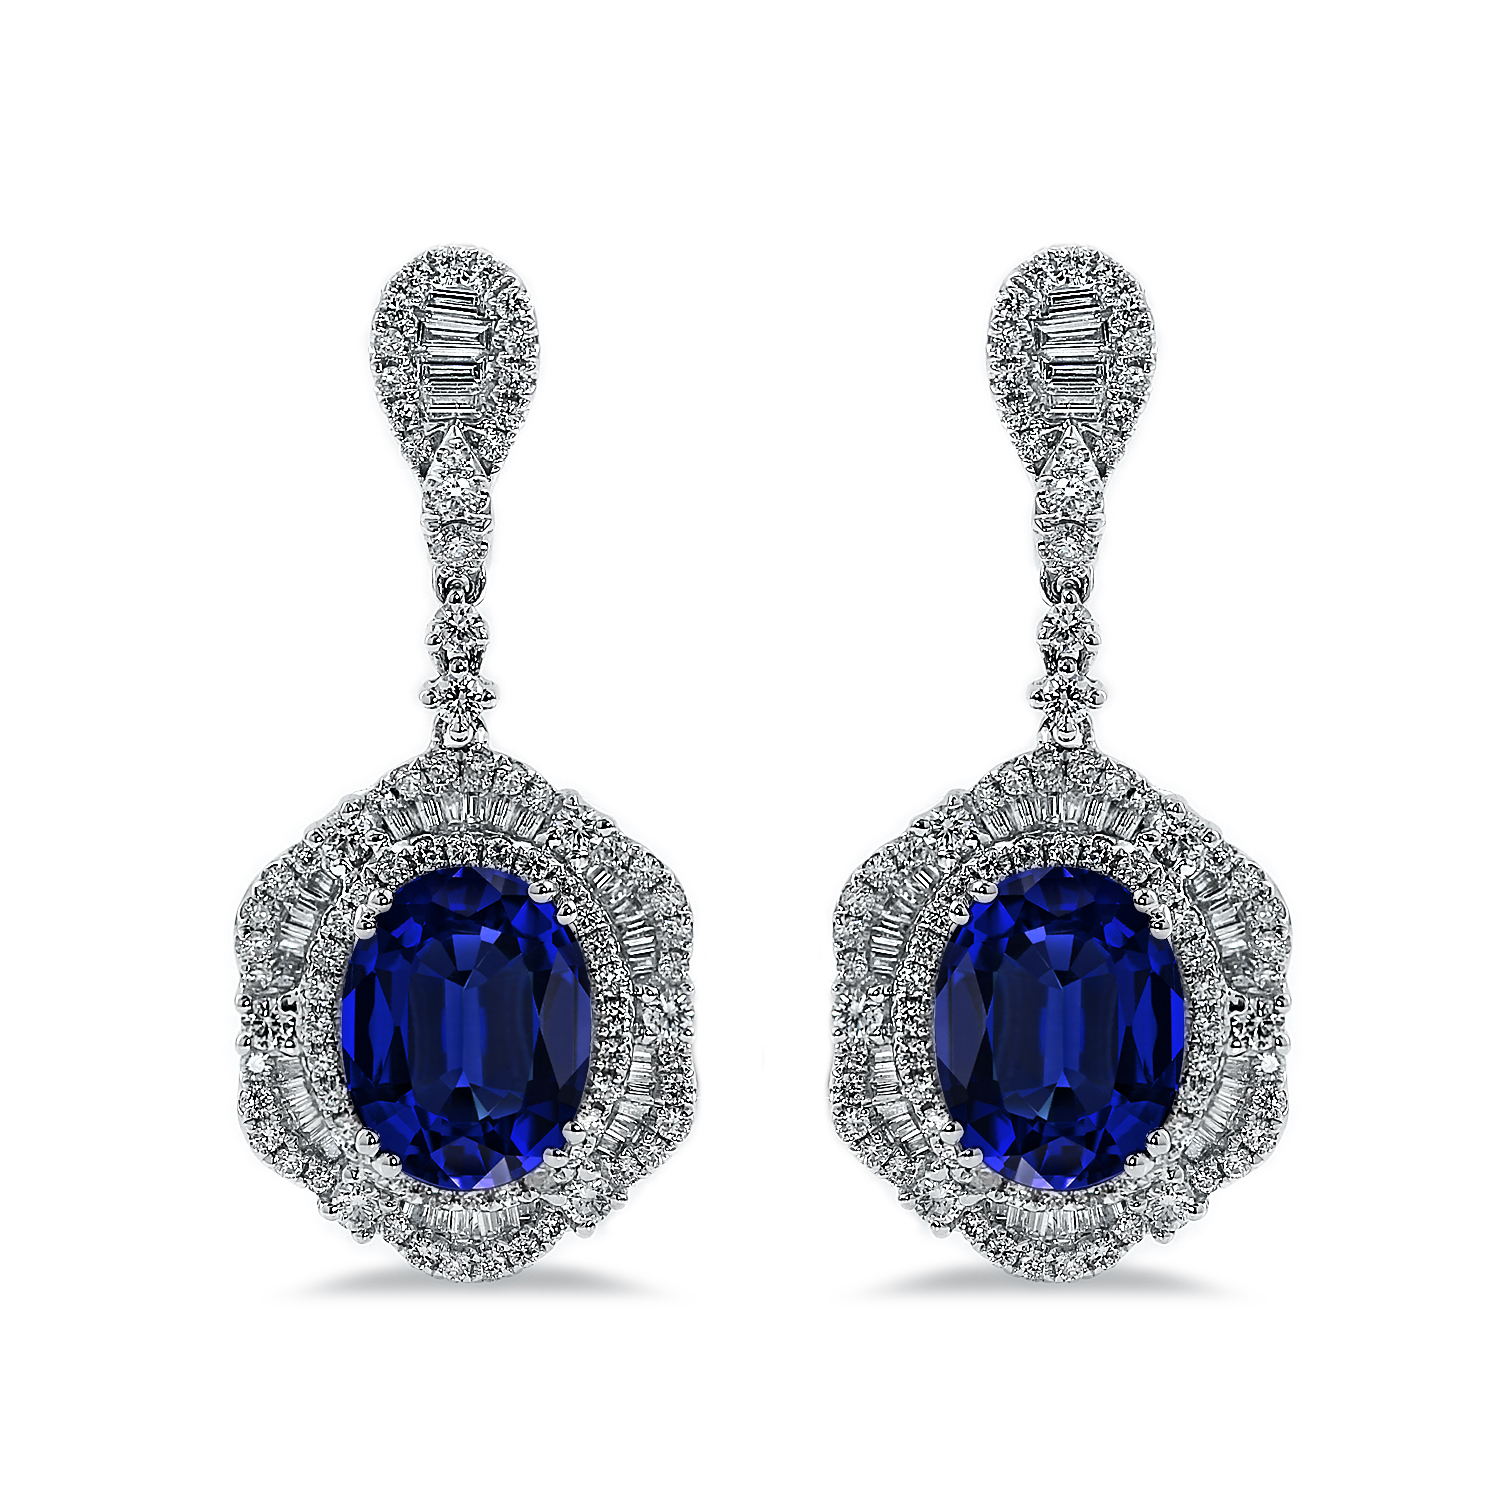 18K White Gold Halo Diamond Drop Earrings with 5 9/10 cttw Oval Blue Sapphire and 3 1/10 cttw Diamonds IGI Certified